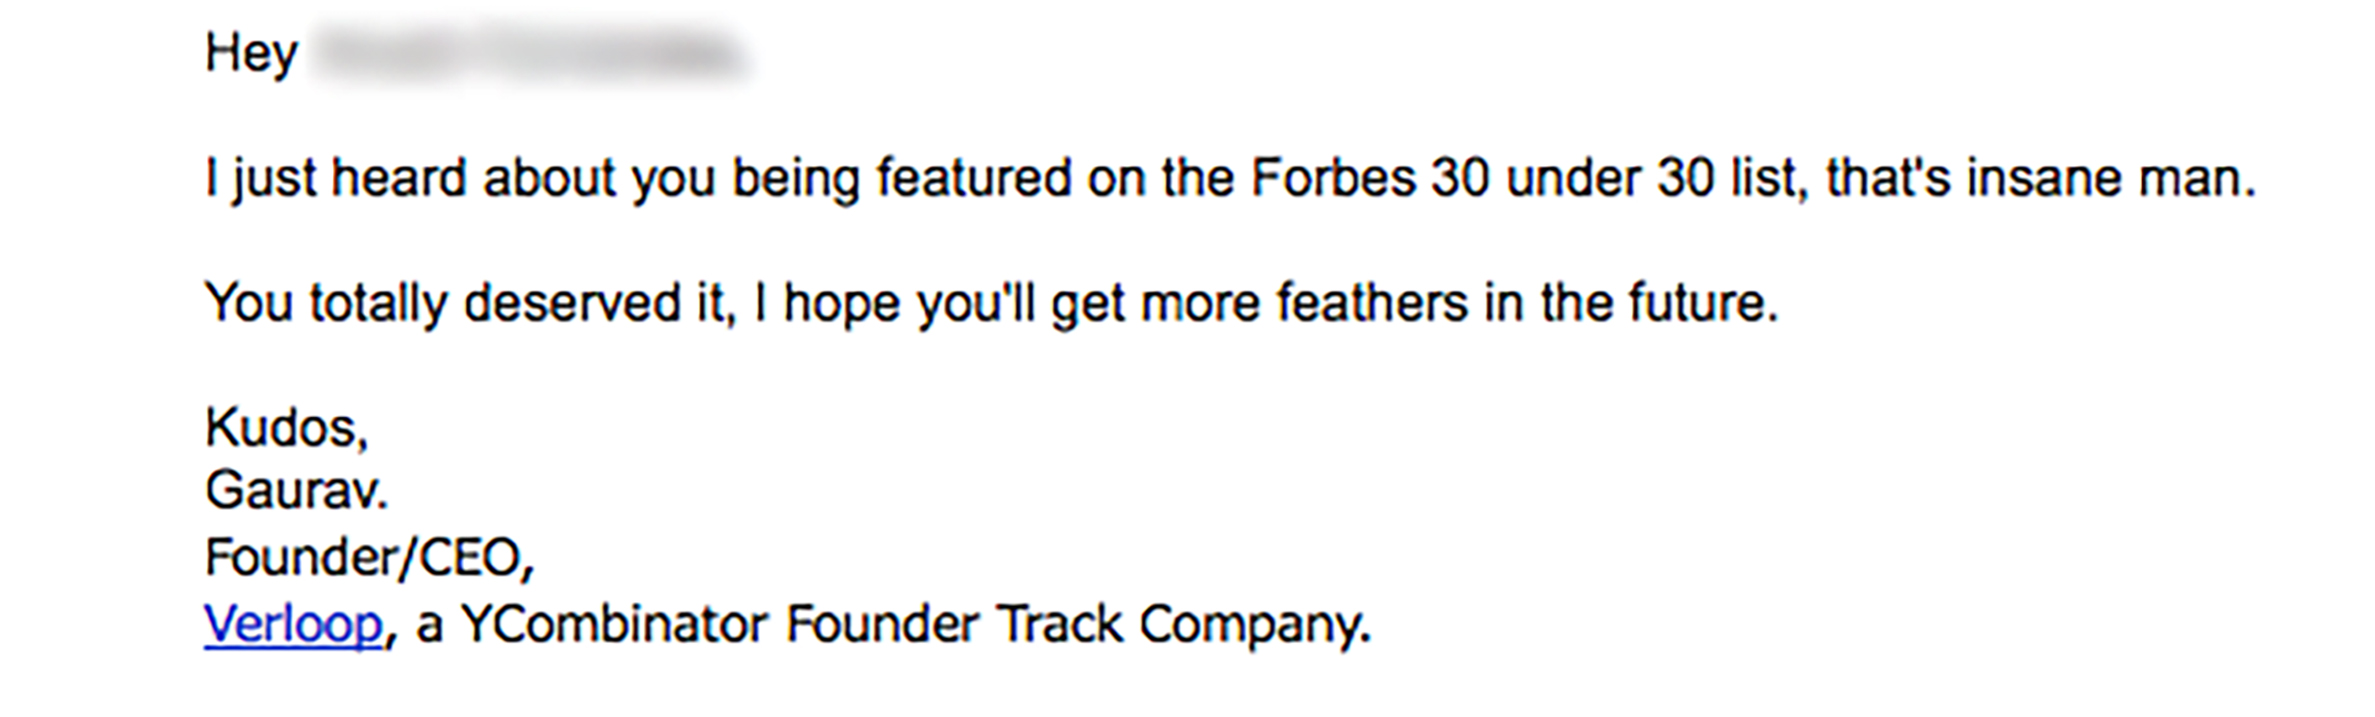 perfect way to draft follow up email